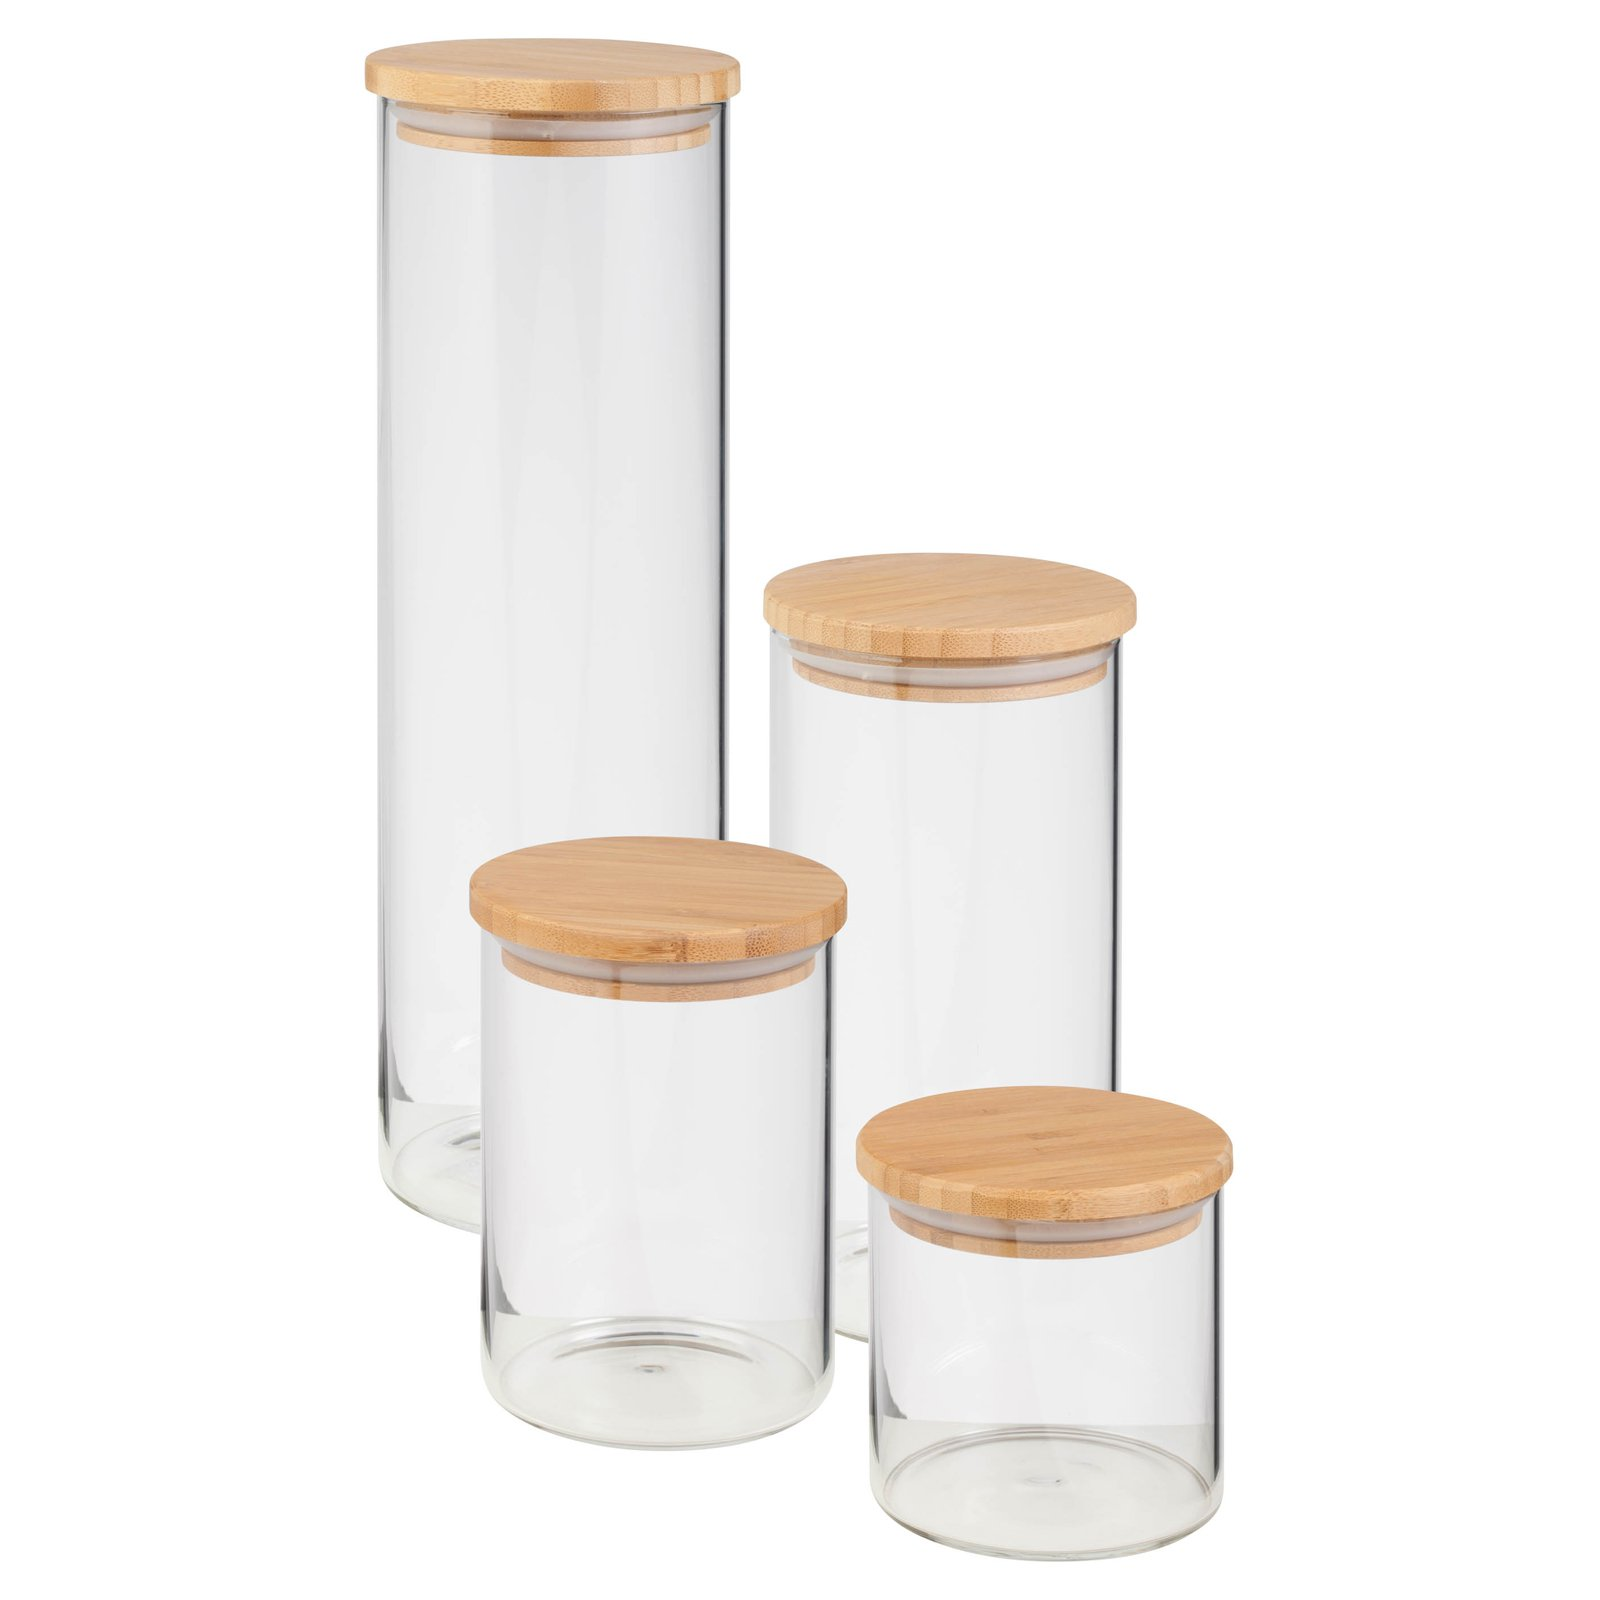 Honey Can Do Glass Dry Food Storage Jars with Bamboo Lid, (4-Piece Set) by Honey Can Do